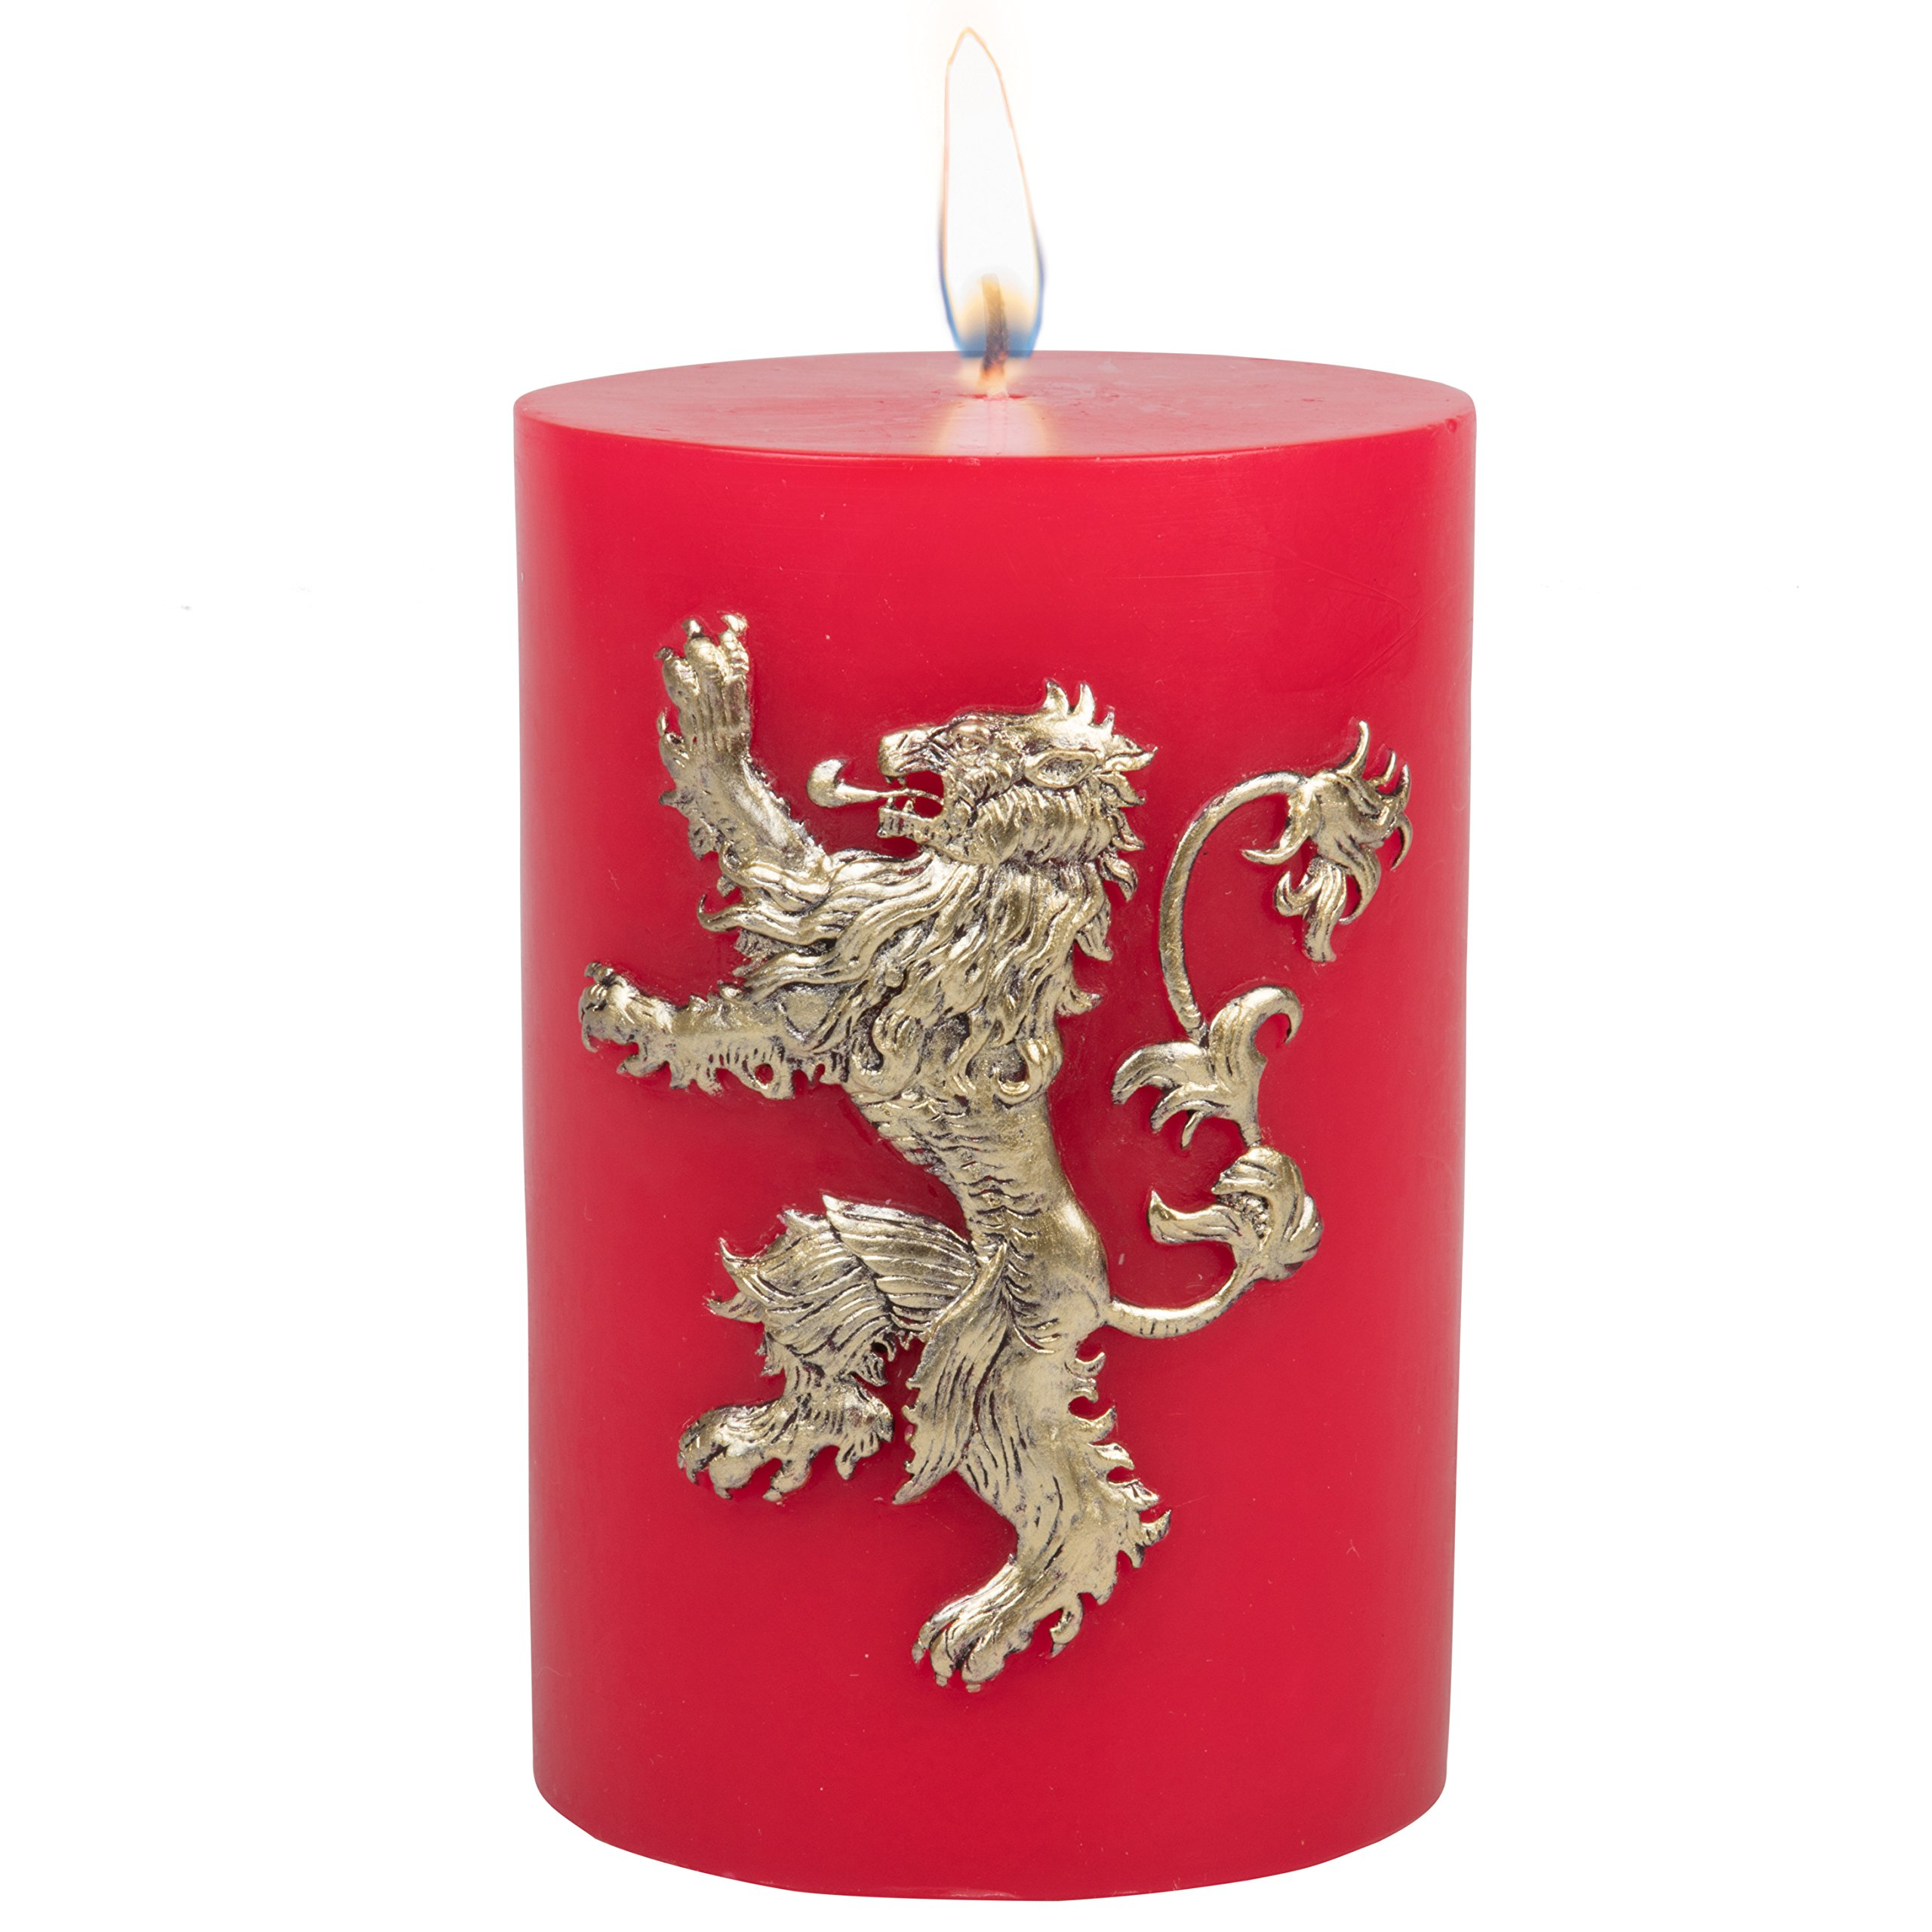 Game of Thrones Candle - House Lannister Insignia Sculpted Pillar Candle - Multi Use Candle With 80 Hour Burn Time - Perfect Gift for the GoT Fan - Unscented - 6''h